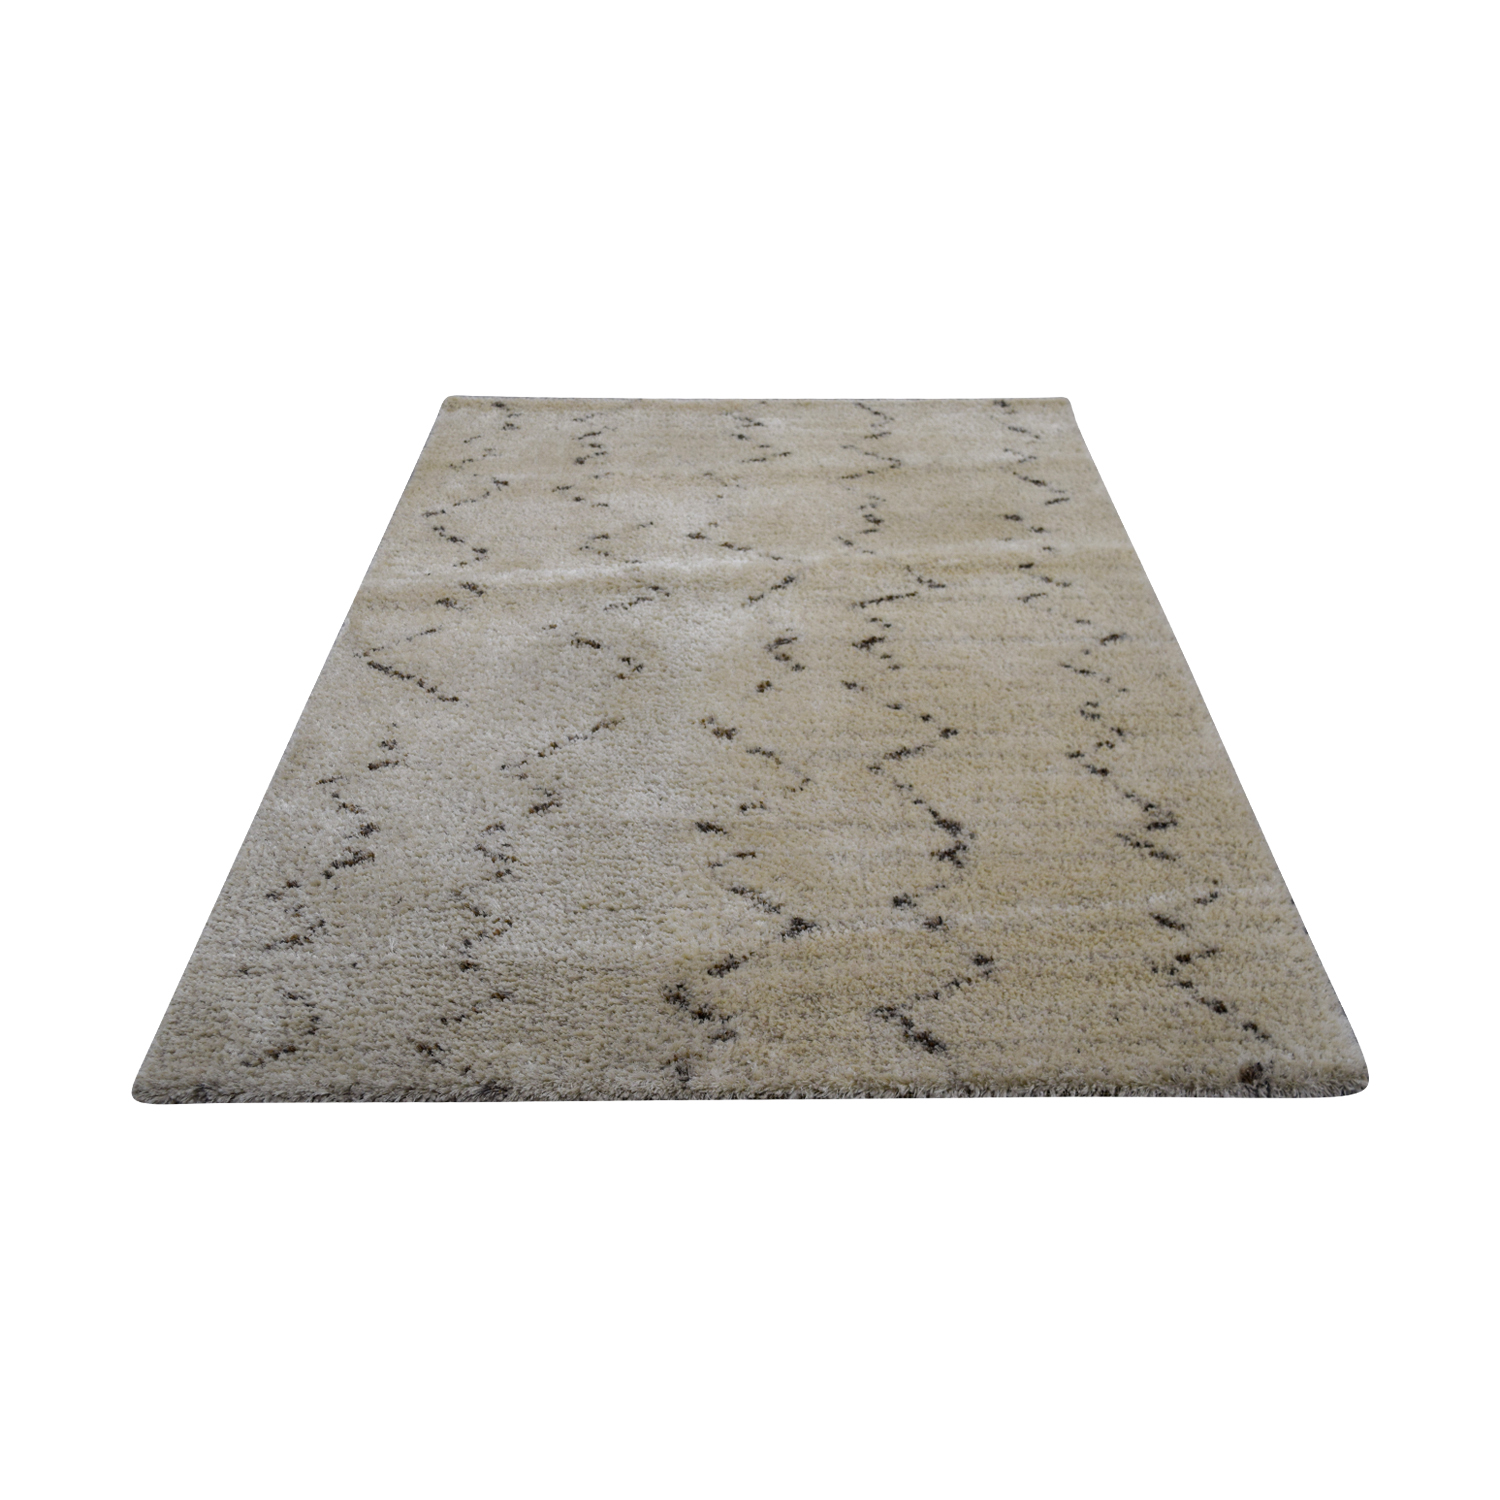 Macys Macys Beige Rug for sale